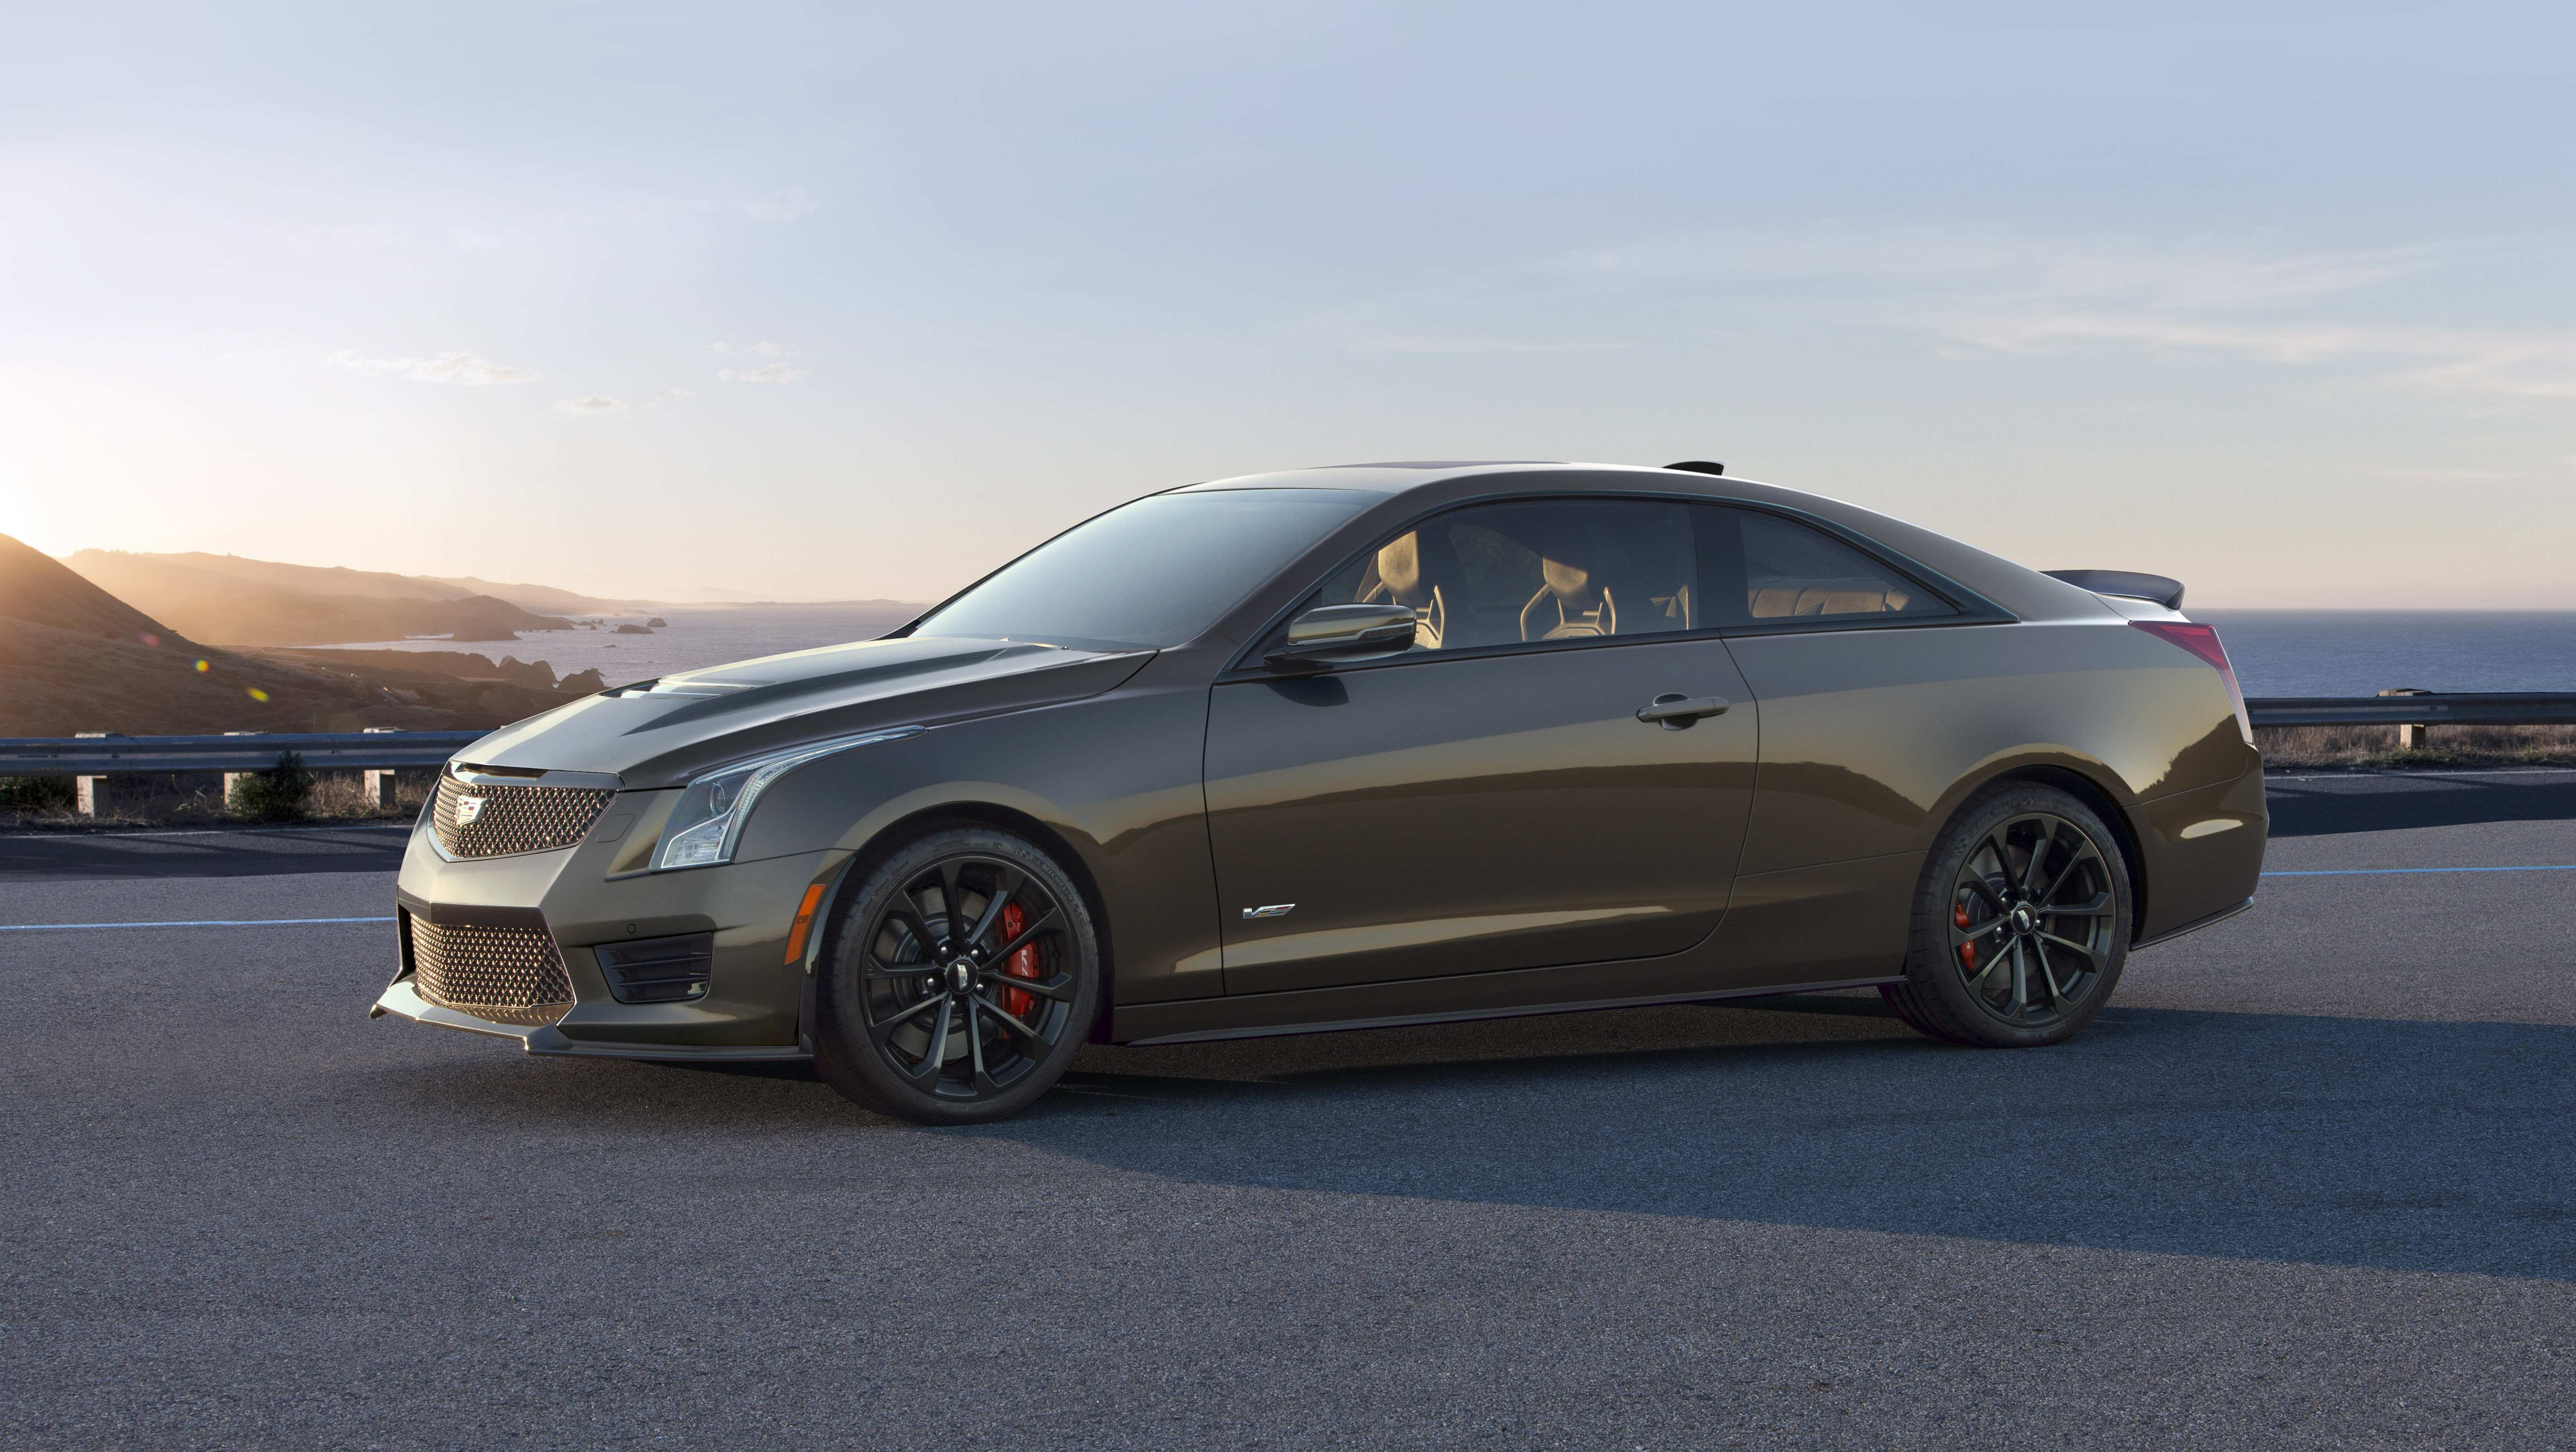 36 All New New 2019 Cadillac Cts V Hp First Drive Spesification by New 2019 Cadillac Cts V Hp First Drive